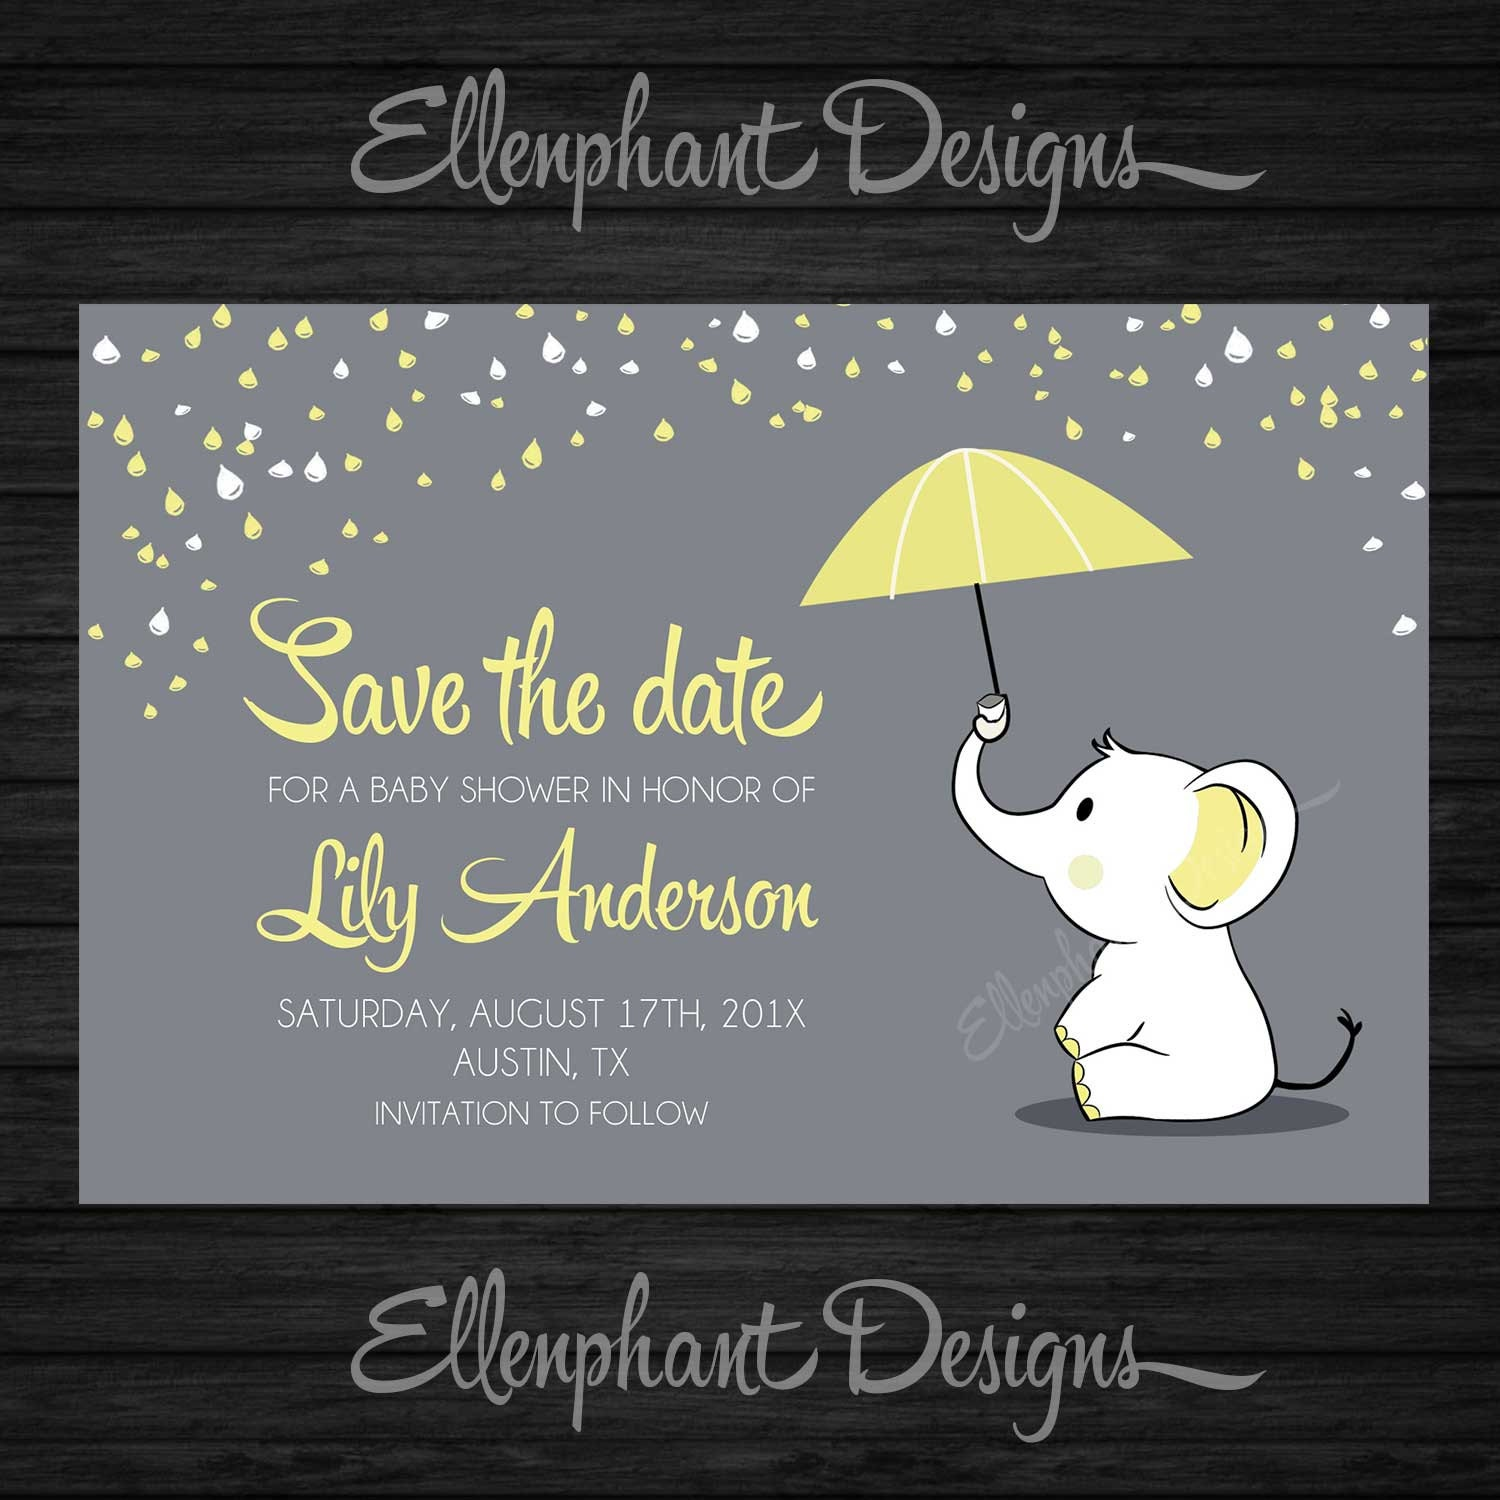 Save the date Yellow elephant Baby Shower umbrella rain